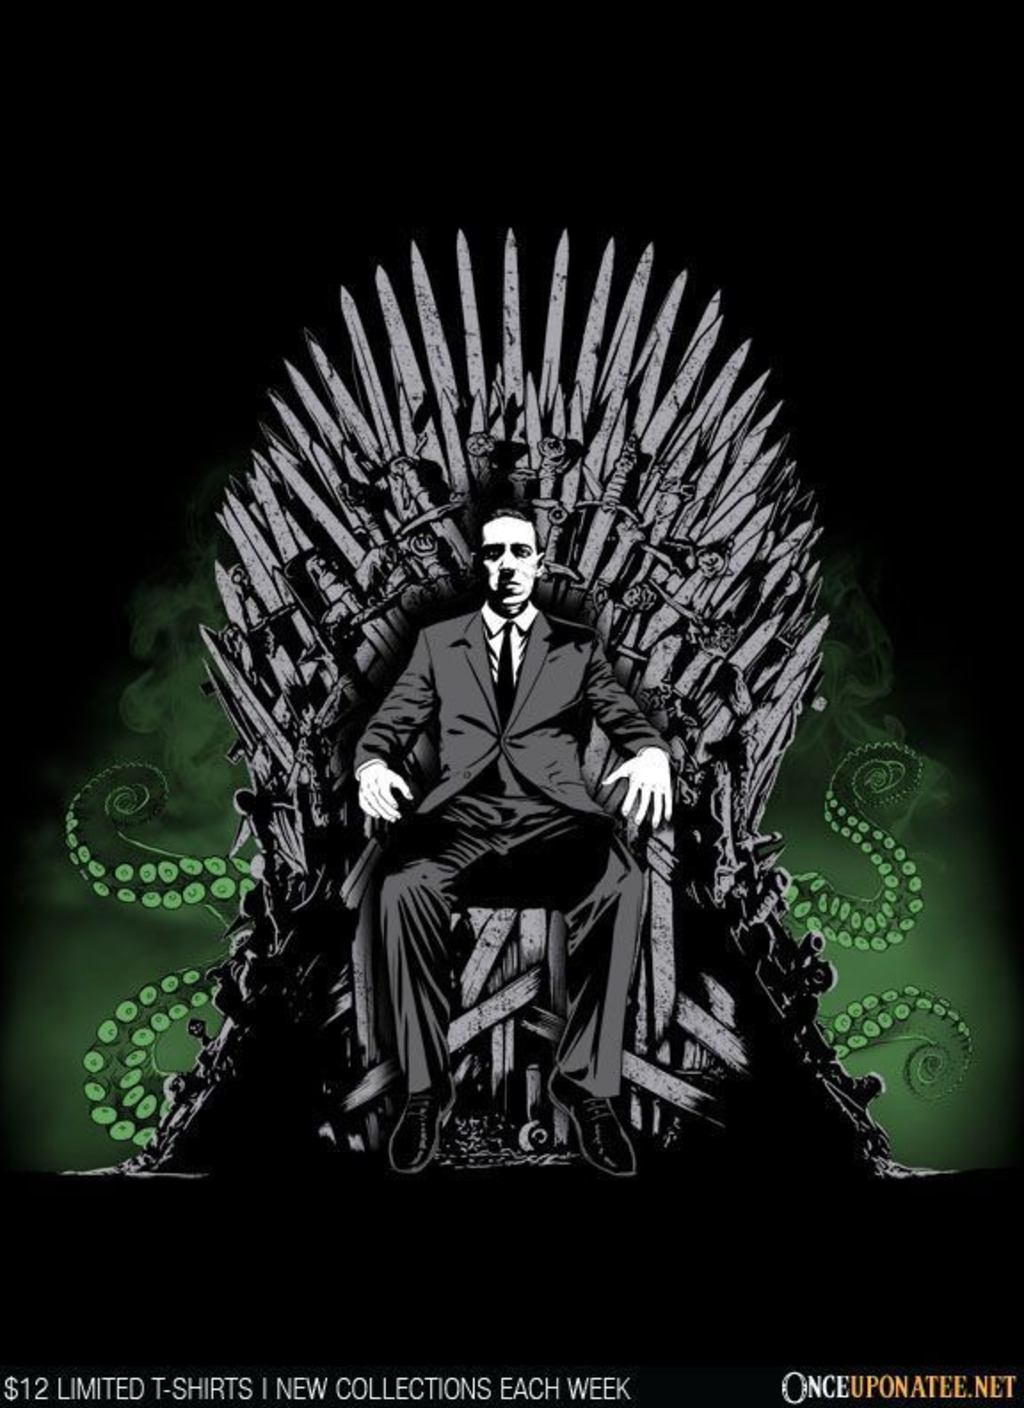 Once Upon a Tee: Cthulhu is Coming